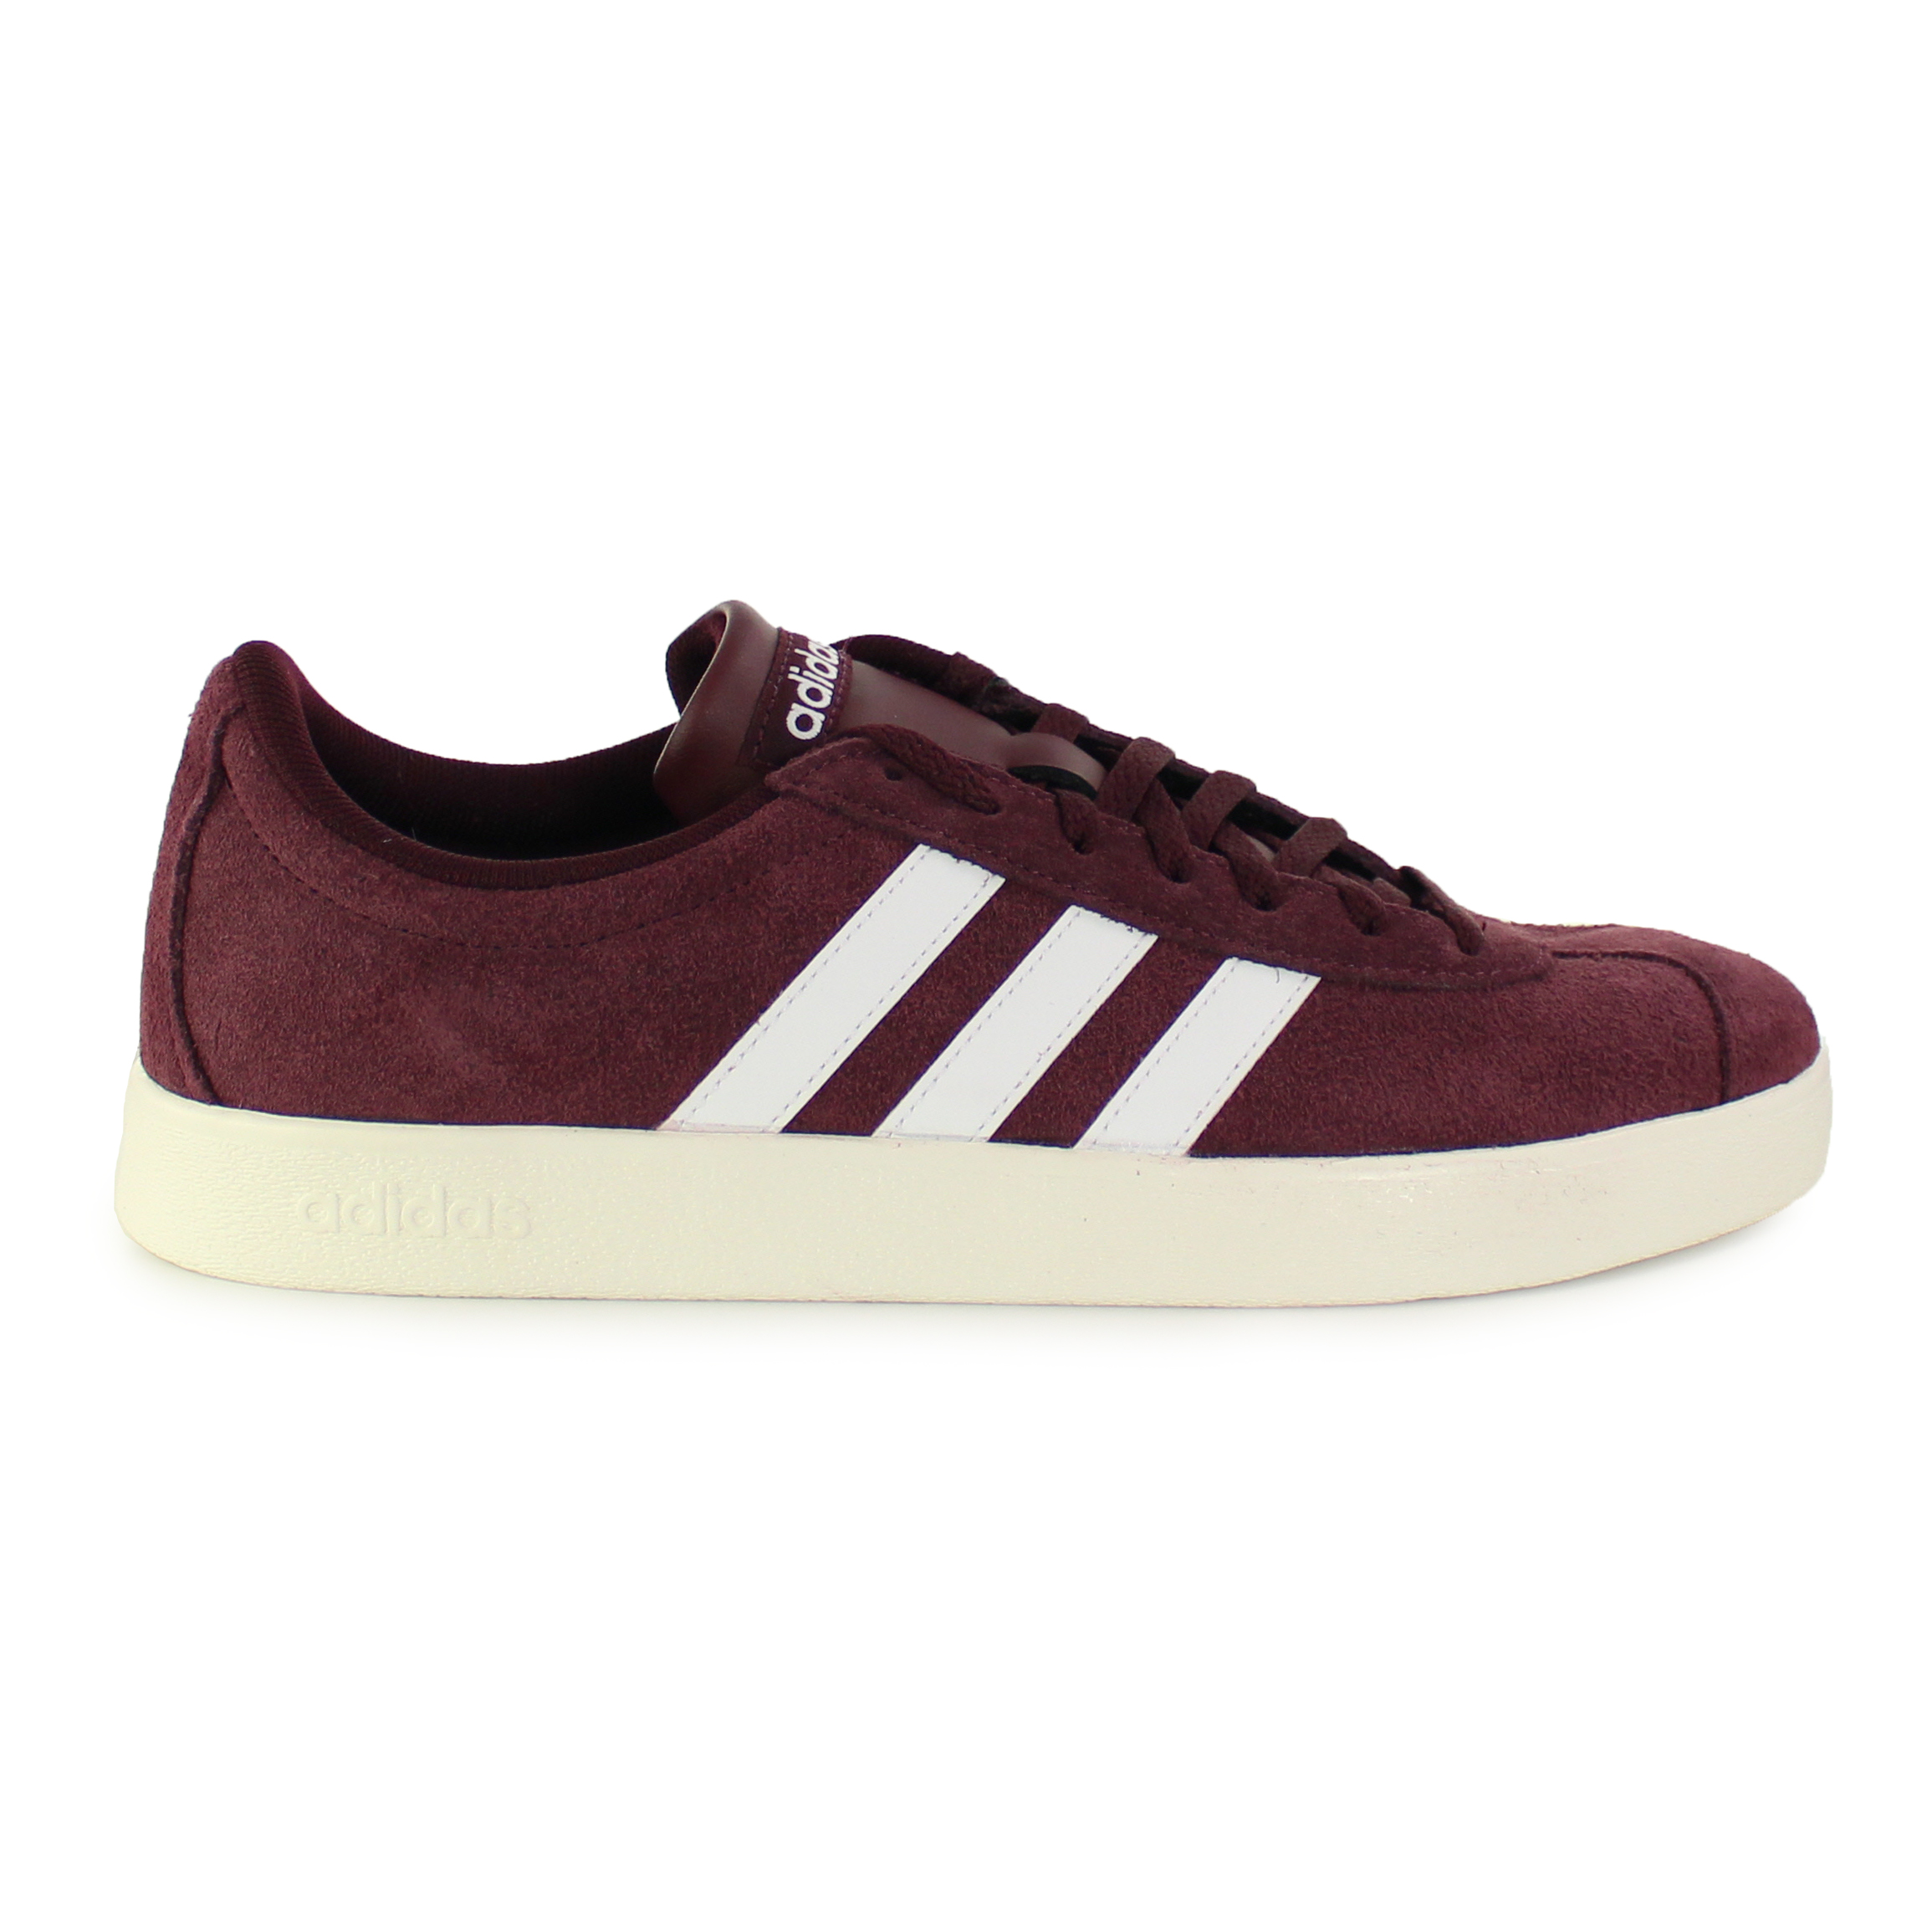 Bordeaux herenschoen Adidas VL COURT 2.0 - B4809